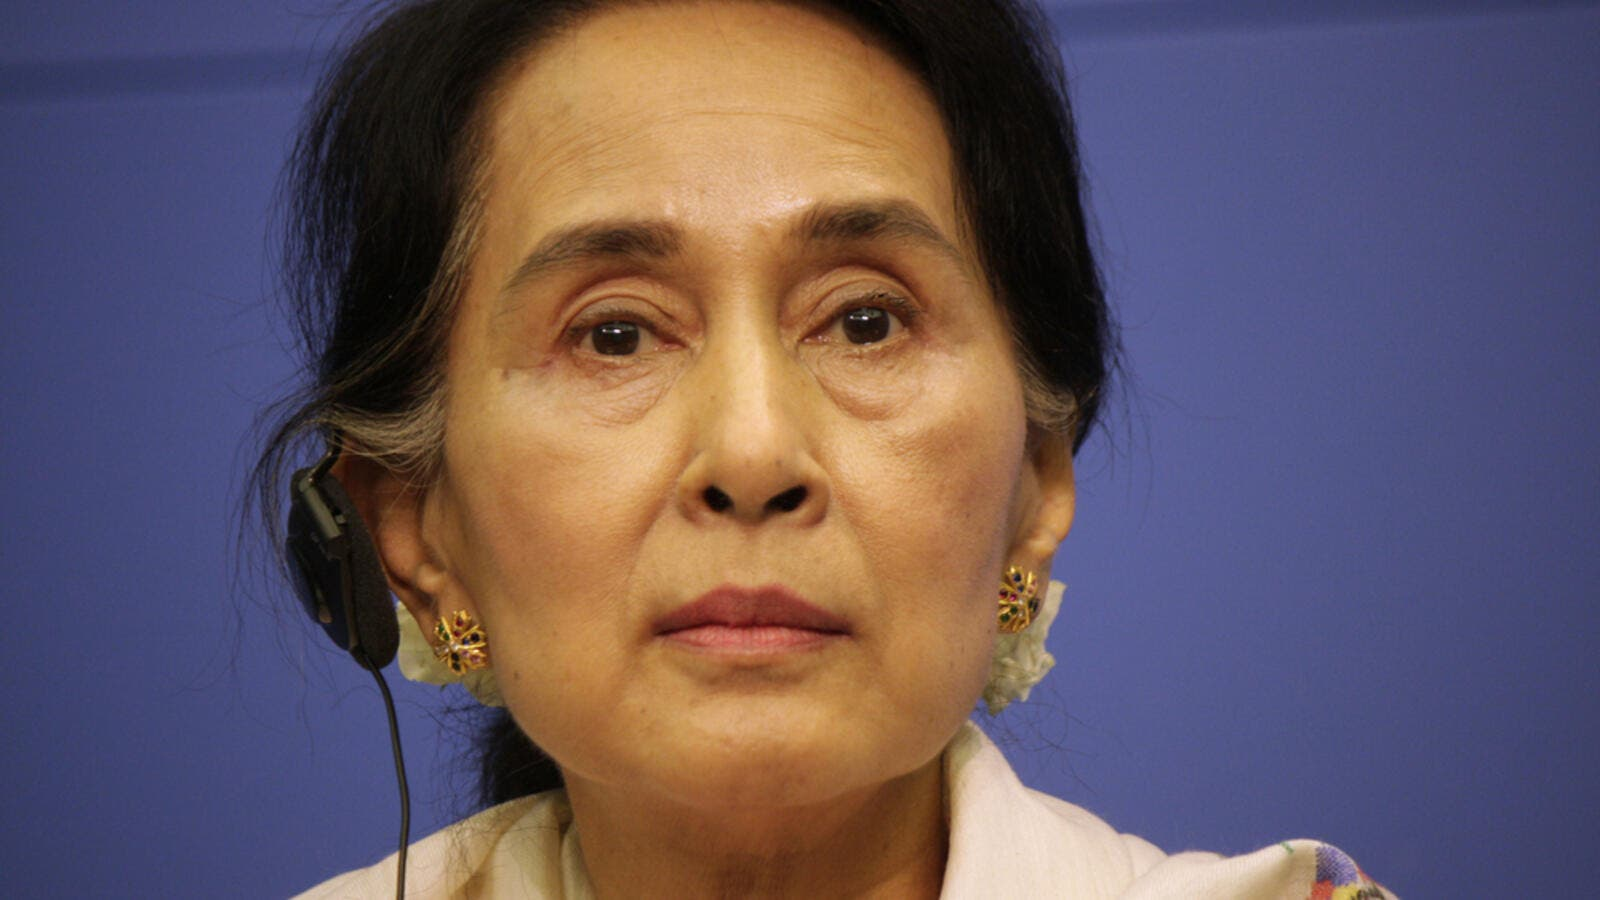 The portrait belonged to Suu Kyi's husband, the Oxford academic Michael Aris, and was bequeathed to the college after his death in 1999 (Shutterstock/File Photo)